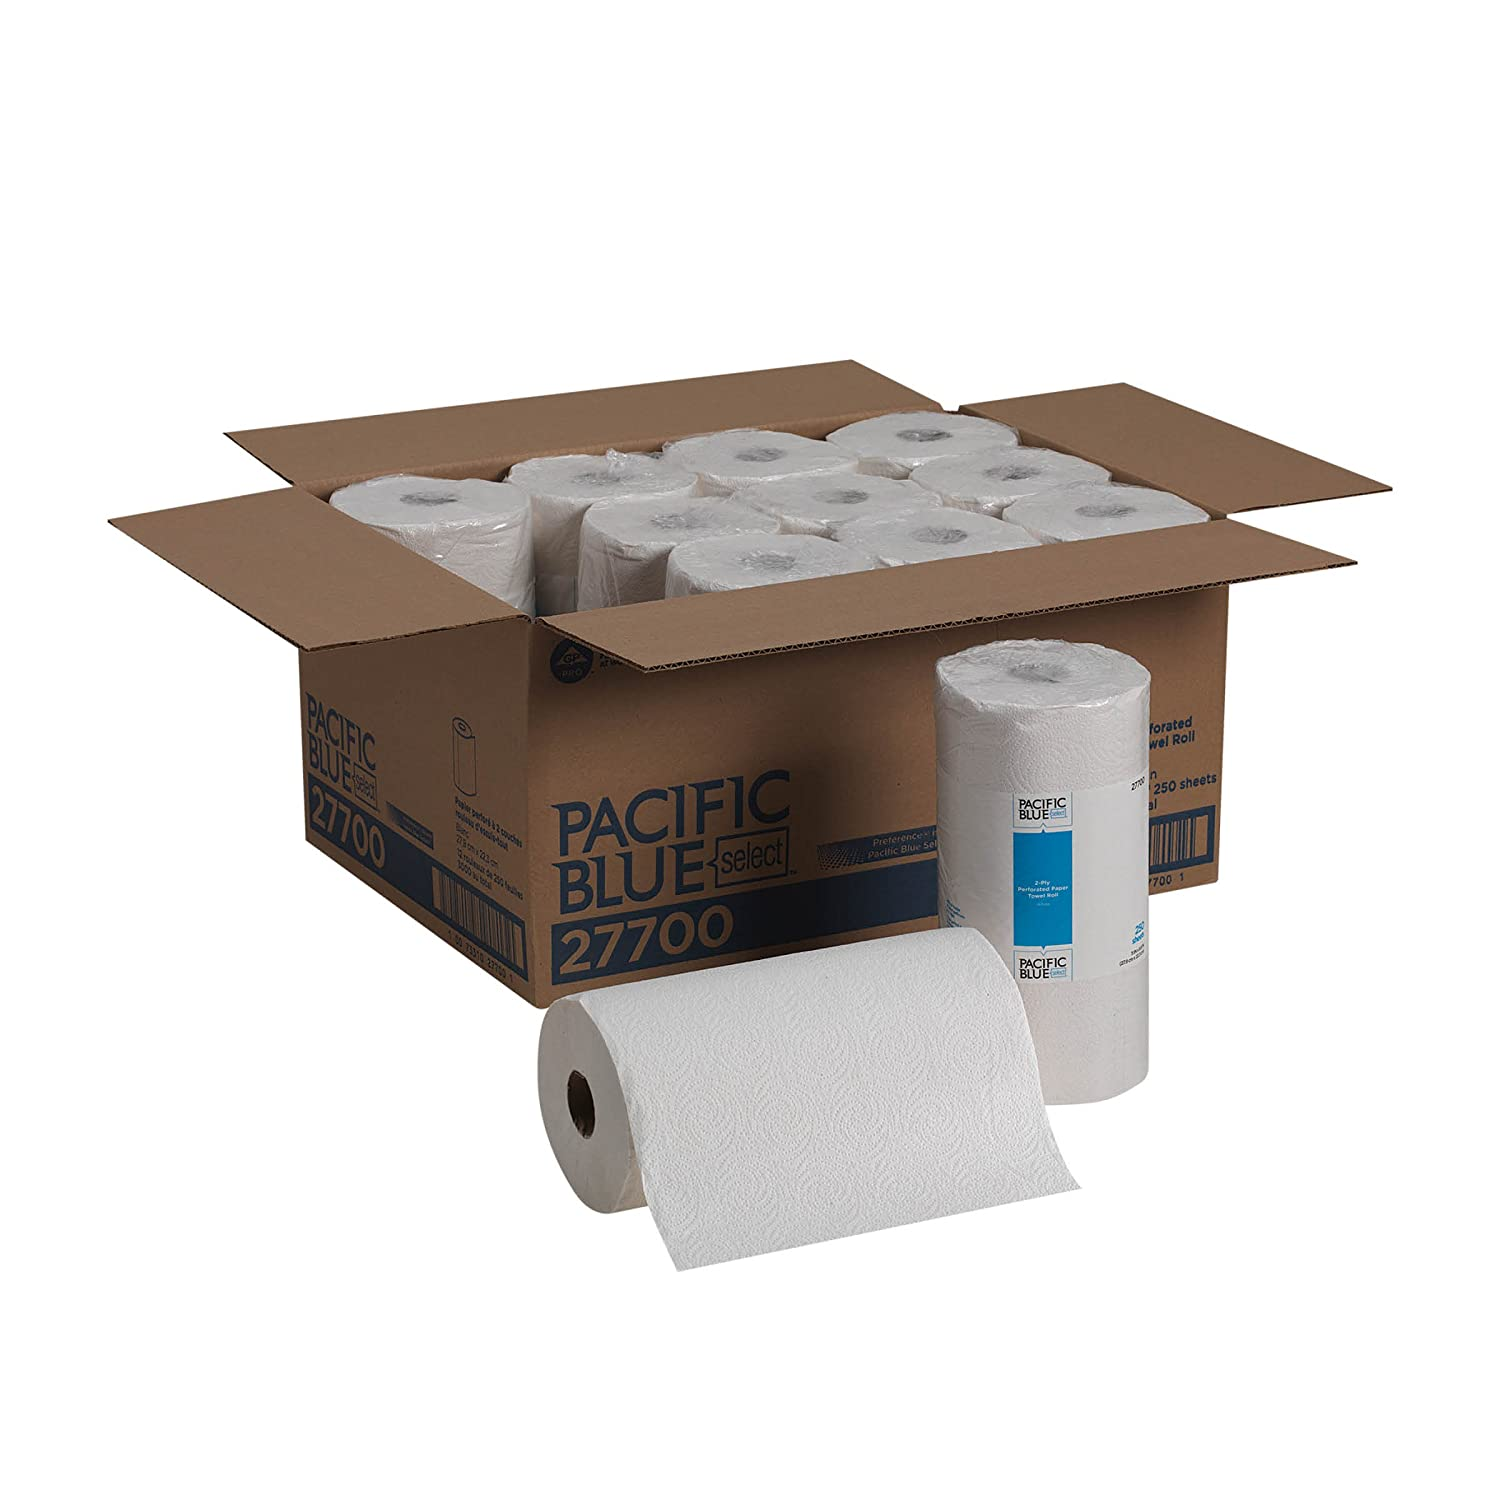 Pacific Blue Select 2 Ply Perforated Roll Towel Previously Branded Preference by GP PRO White 27700; 250 Sheets Per Roll 12 Rolls Per Case